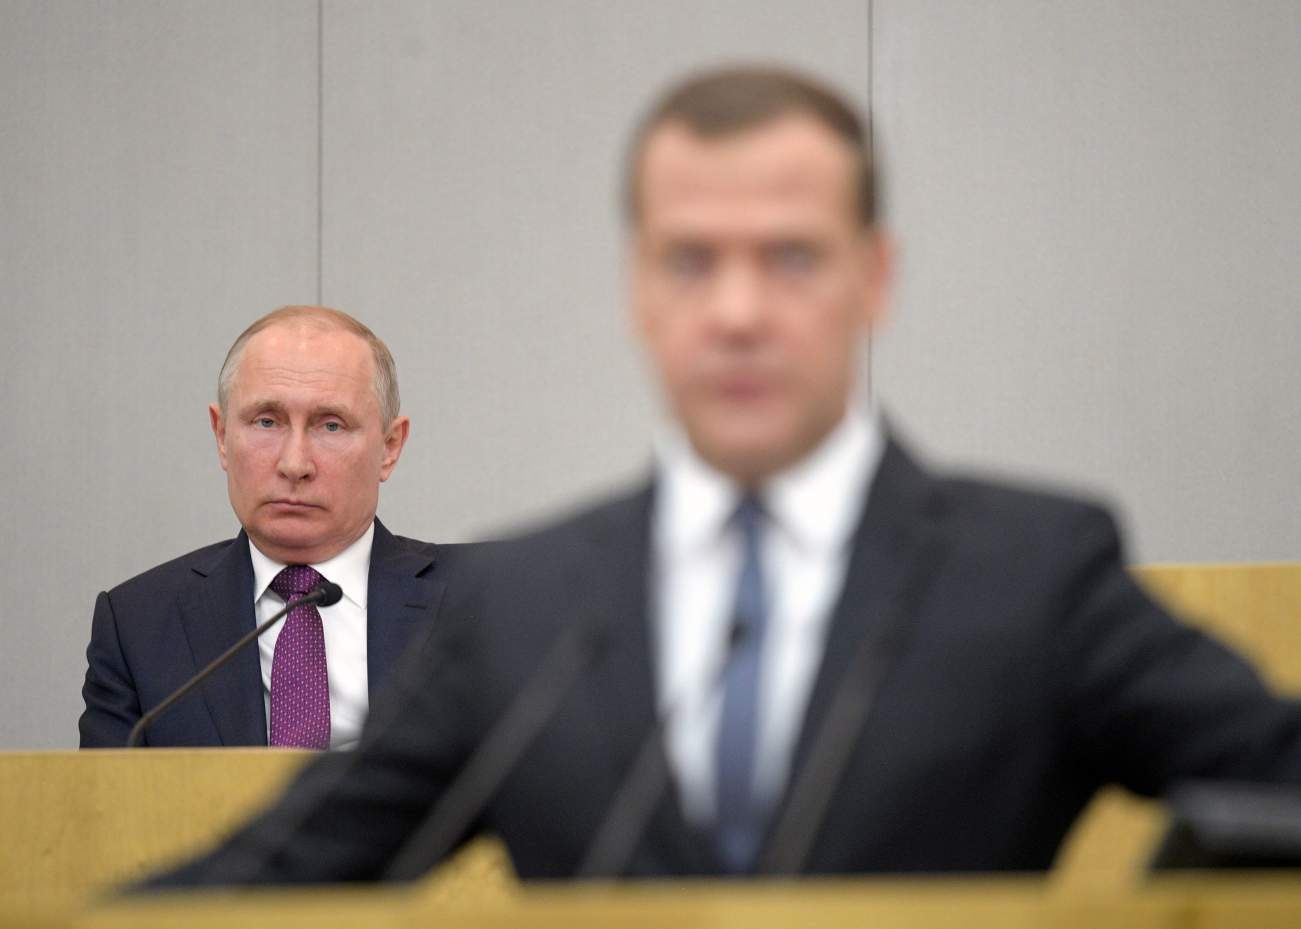 Dmitry Medvedev, who was nominated as the candidate for the post of Russian Prime Minister, and President Vladimir Putin attend a session of the State Duma in Moscow